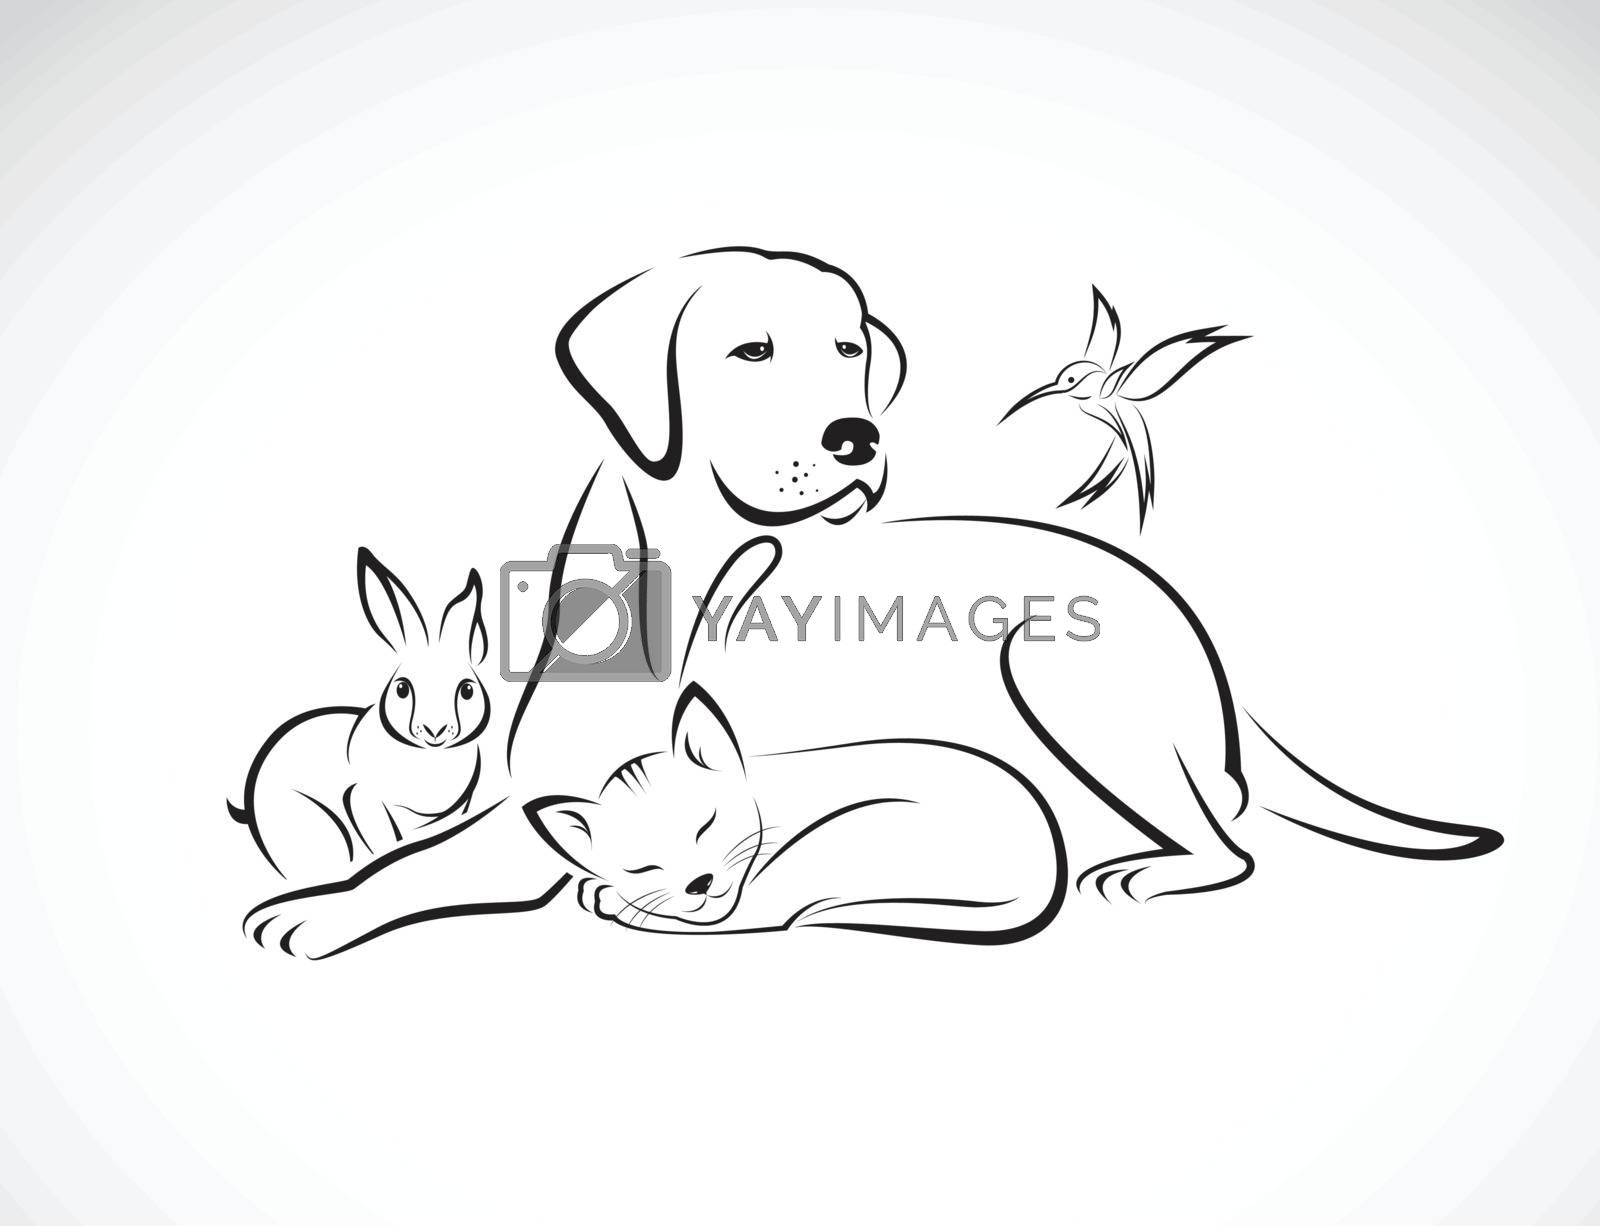 Vector Group Of Pets Dog Cat Bird Rabbit Isolated On White Royalty Free Stock Image Yayimages Royalty Free Stock Photos And Vectors